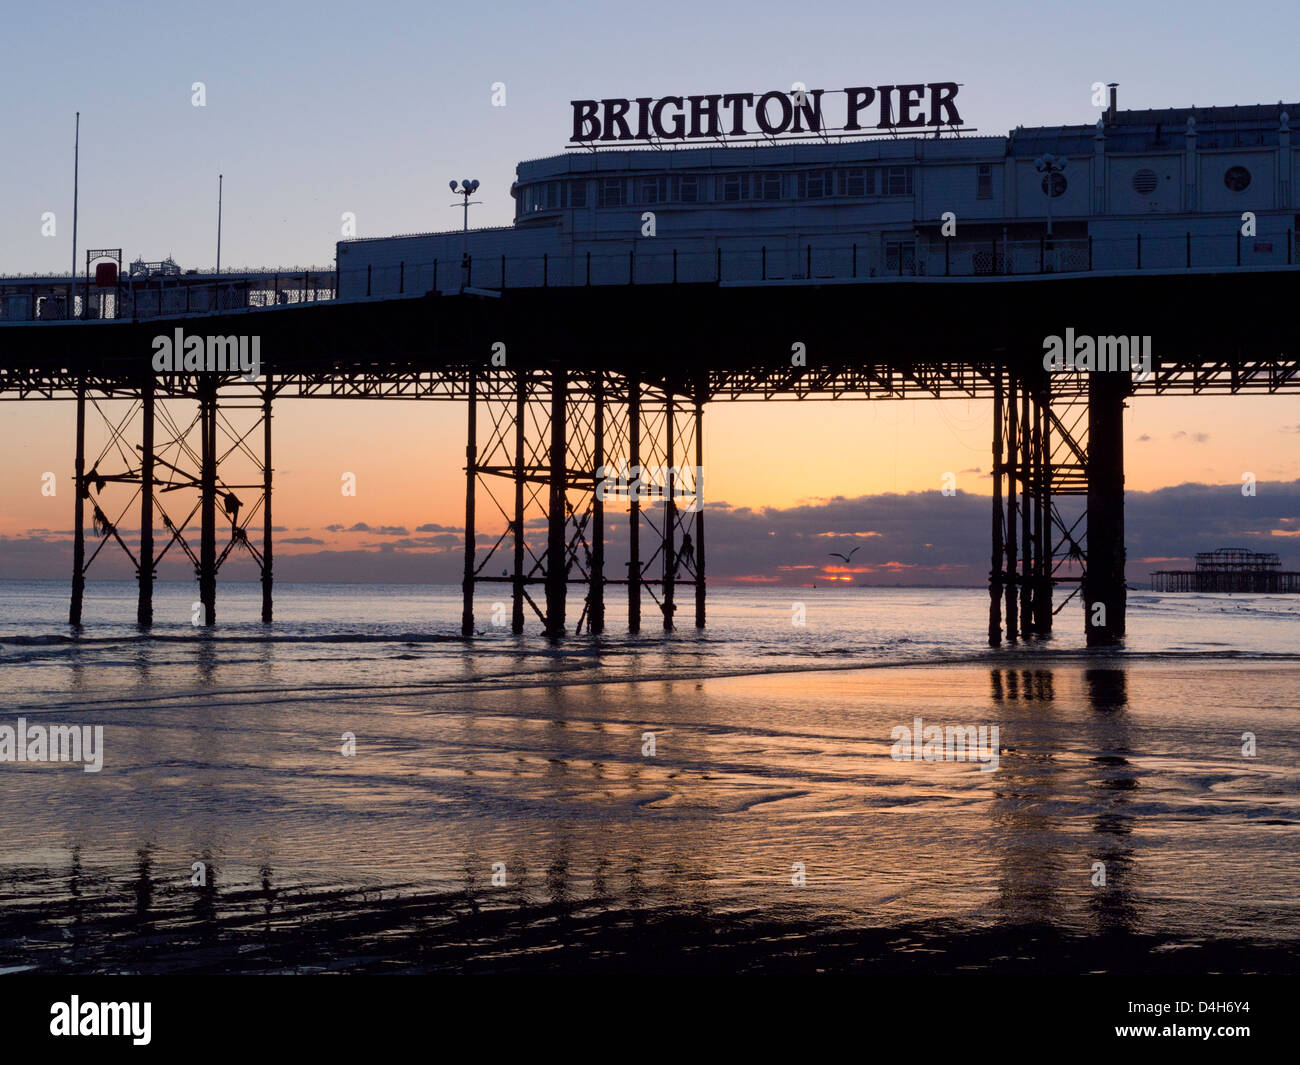 Brighton Pier at sunset, golden sky reflecting off the sand at low tide - Stock Image